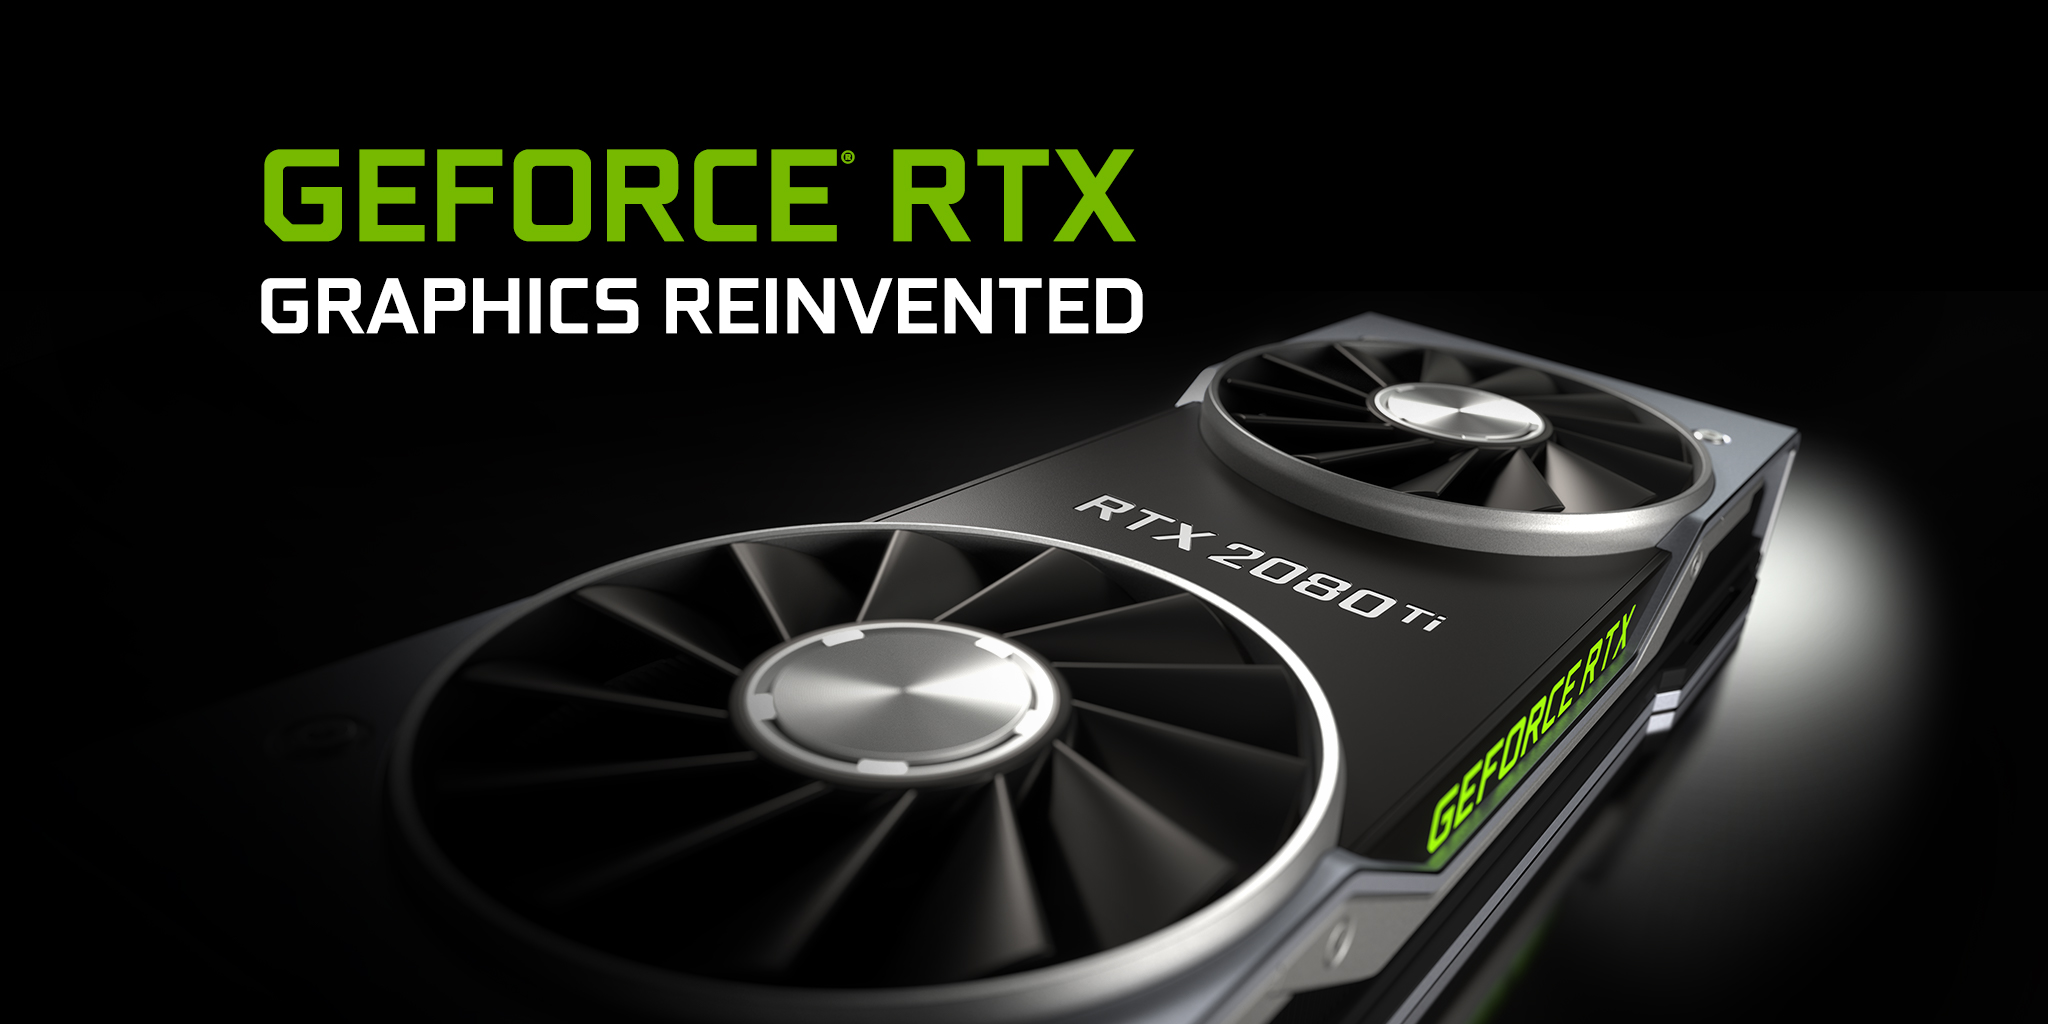 geforce-rtx-20-series-social-2048x1024.jpg